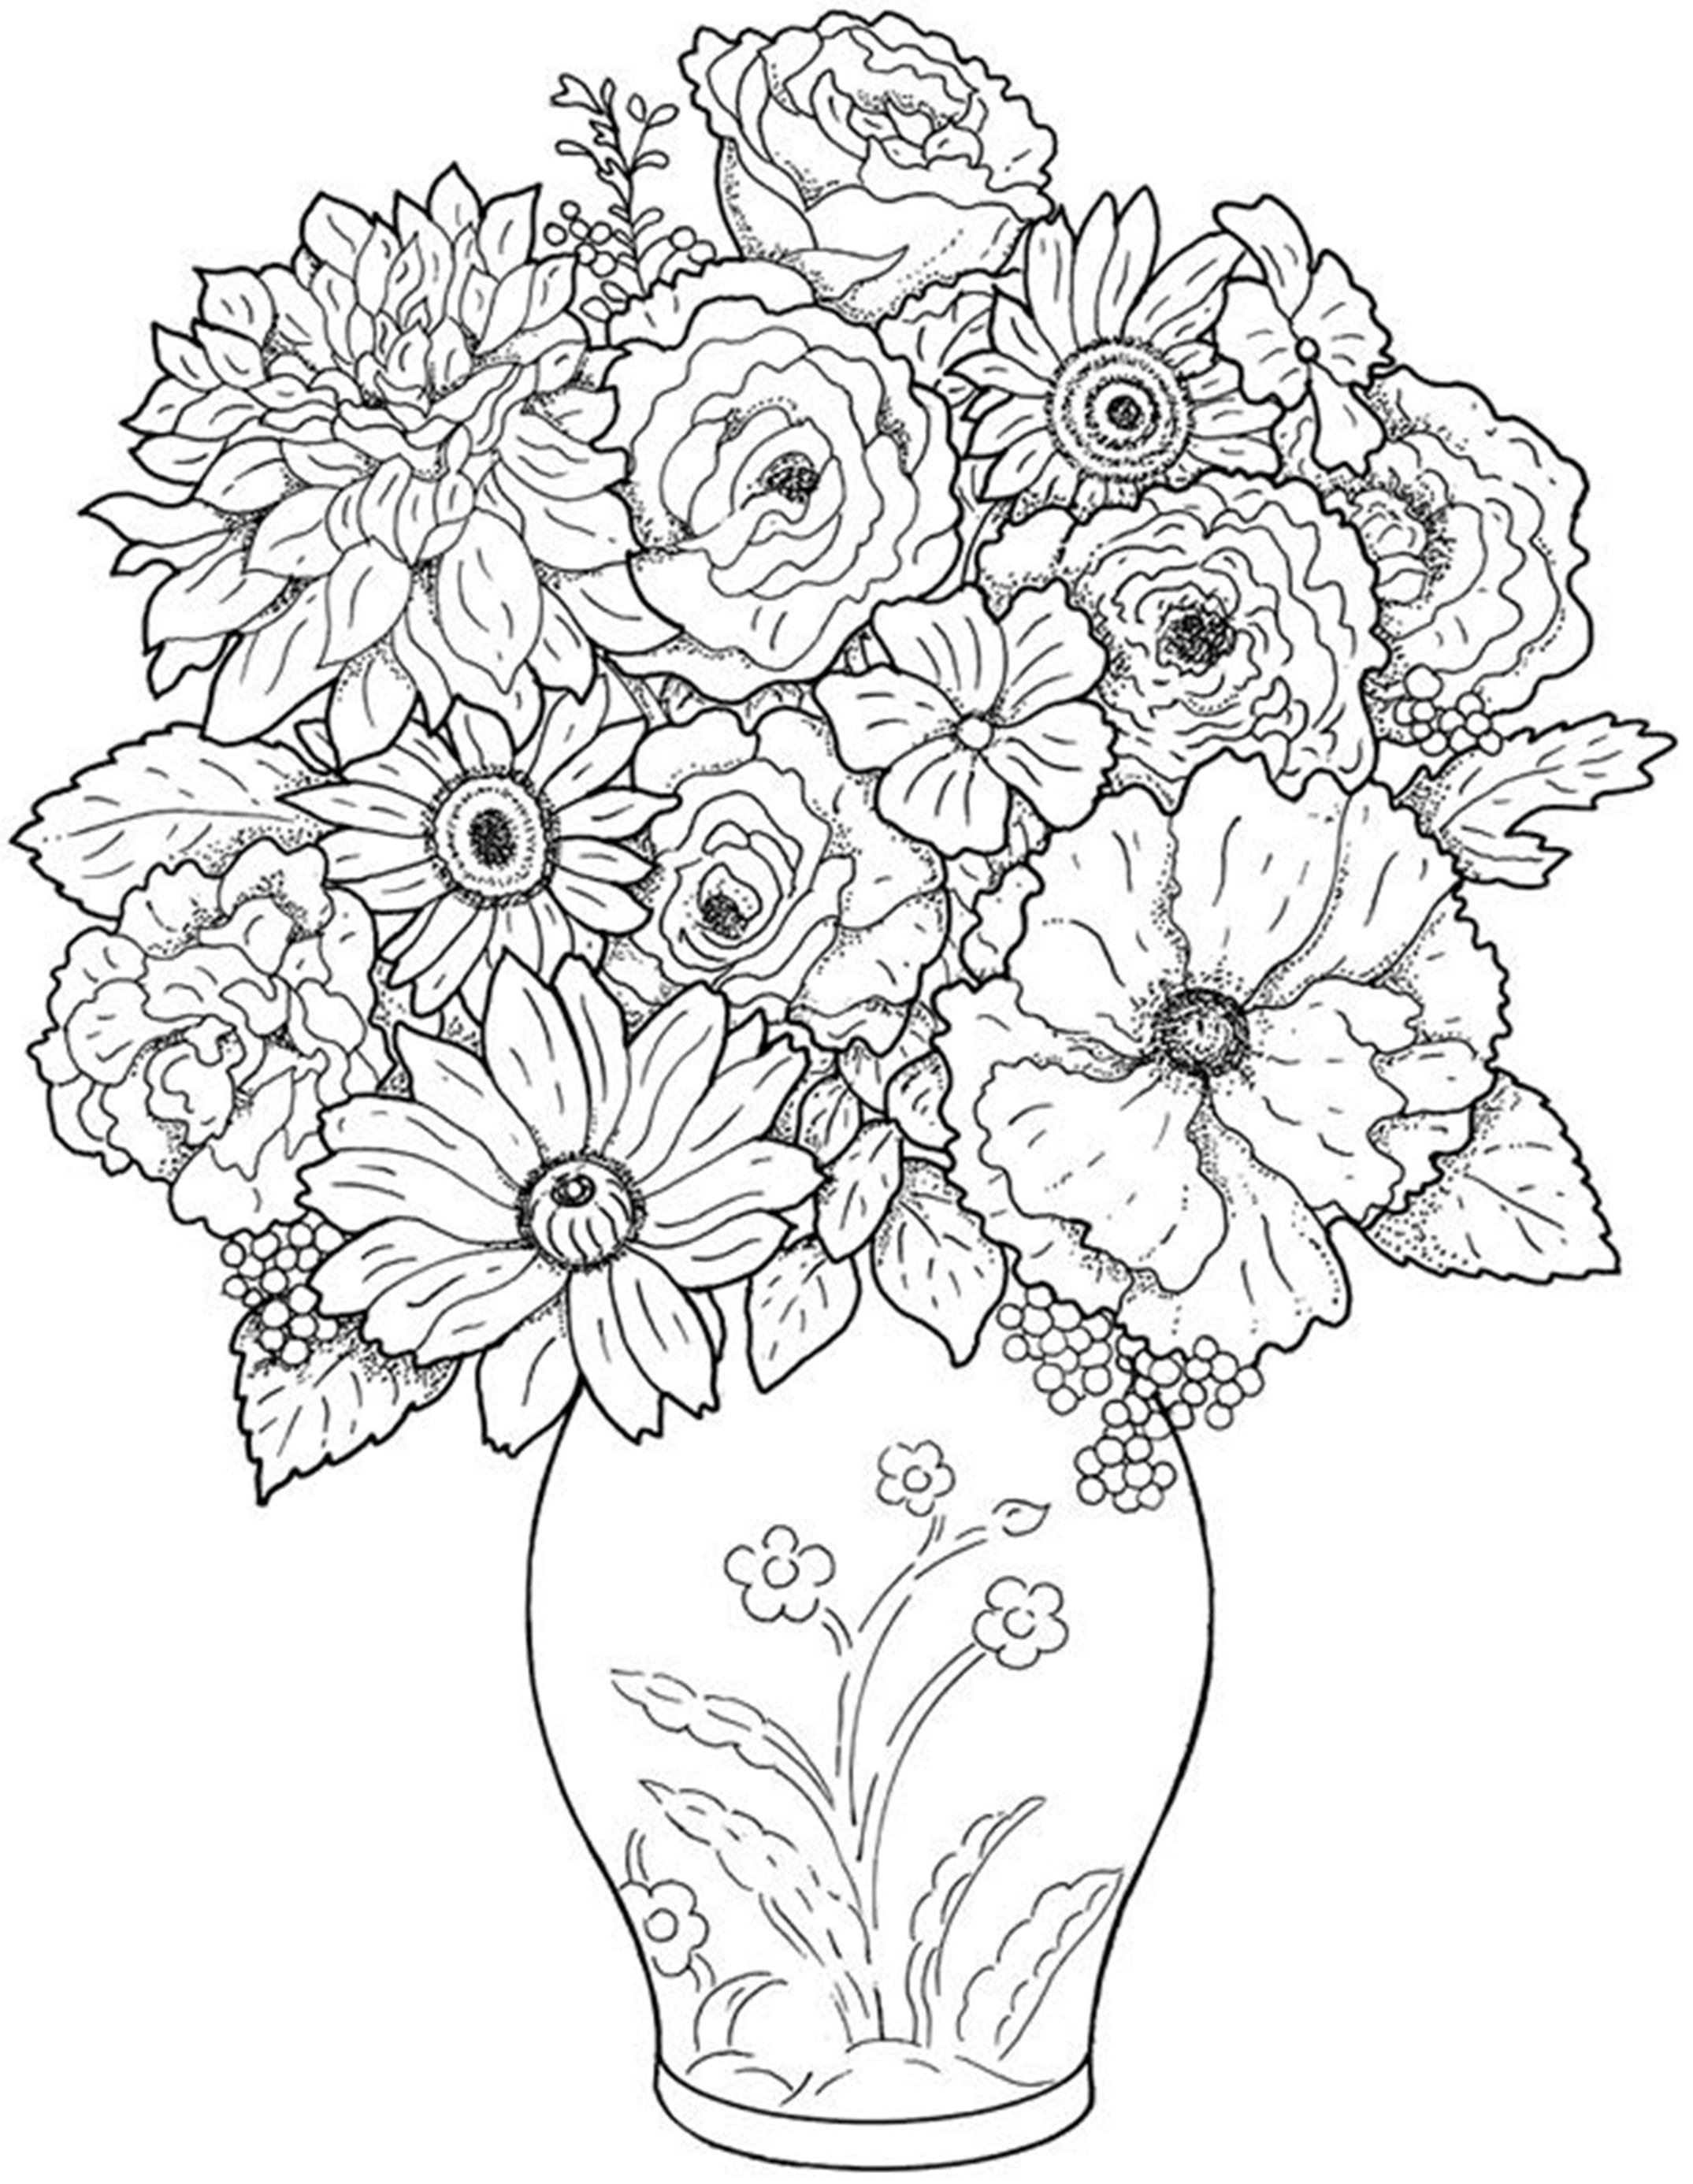 Drawn vase flower coloring page Free flower coloring  Coloring